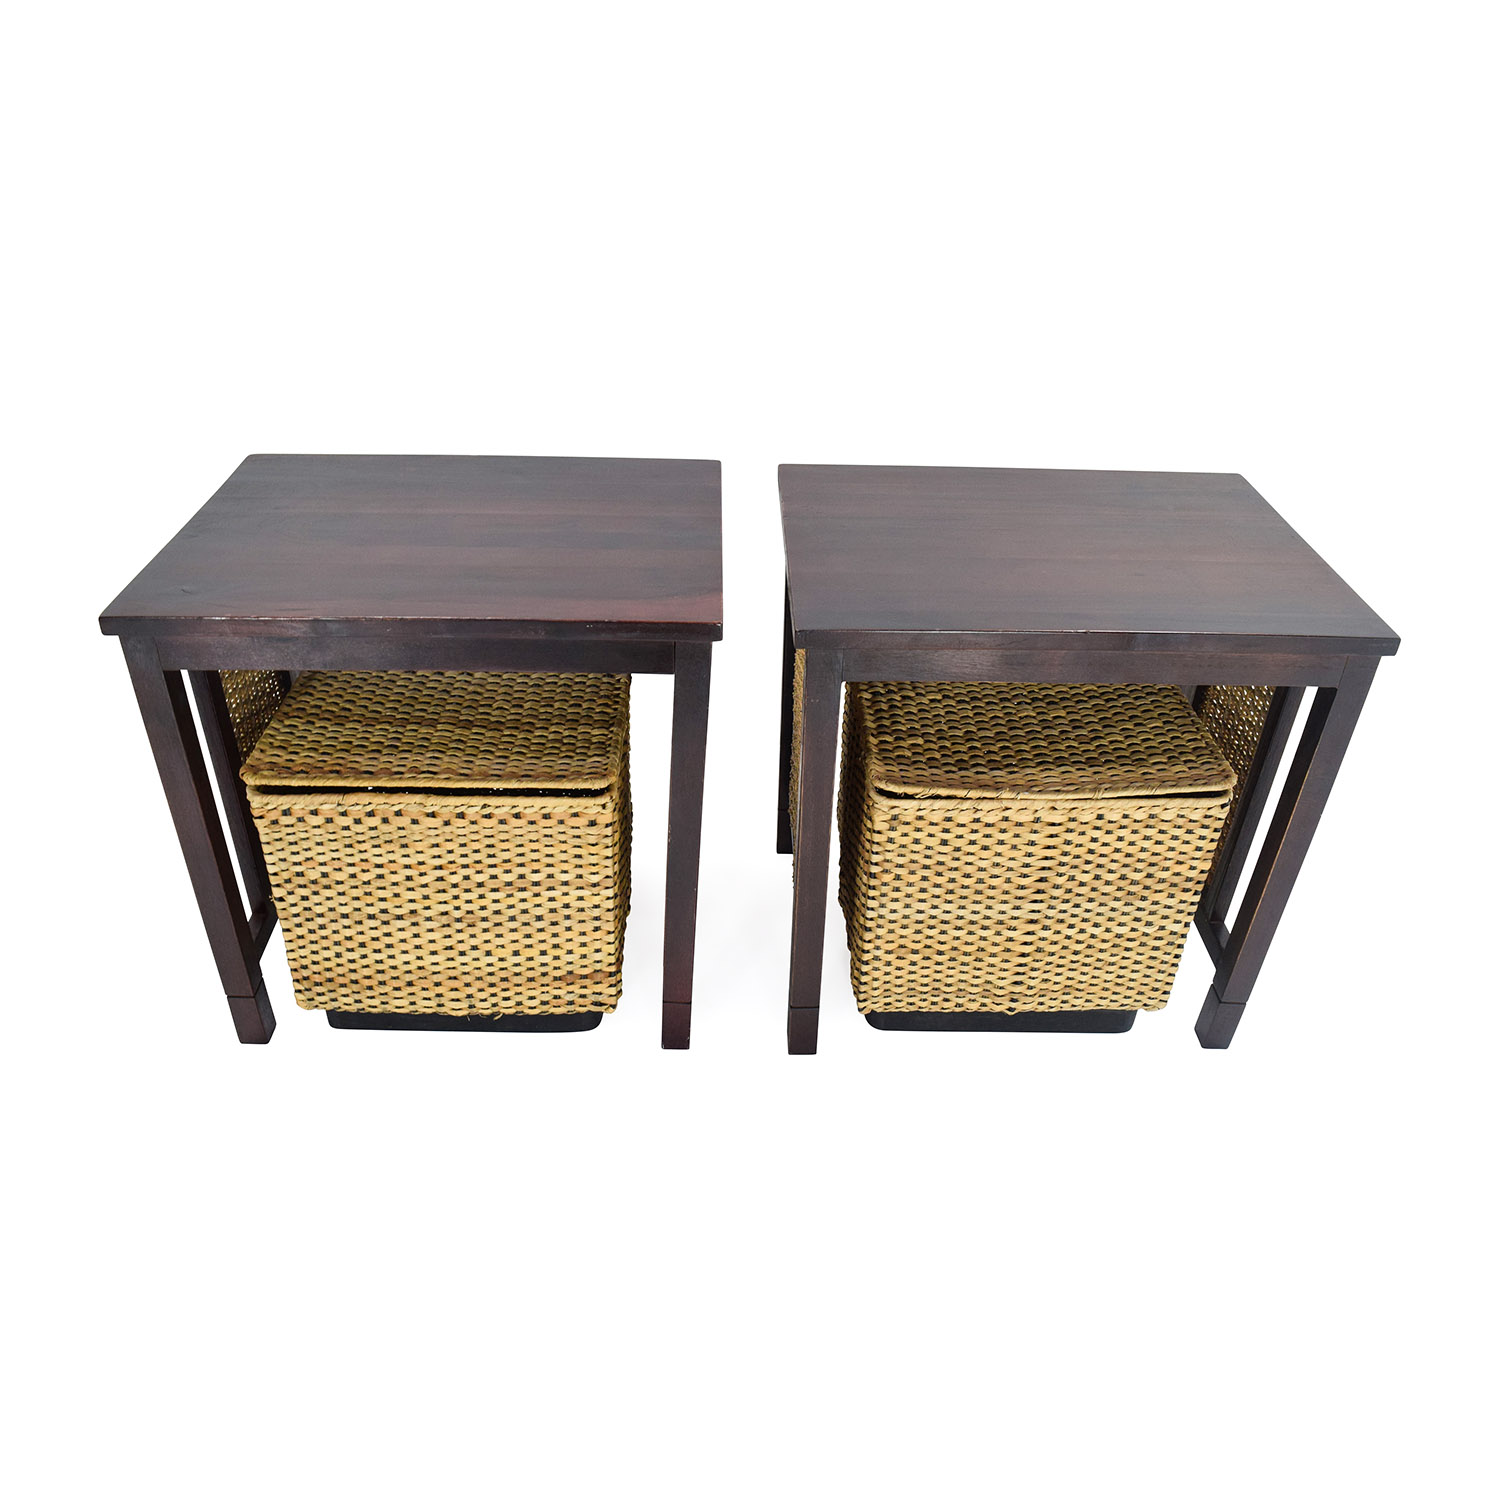 Unknown Brand Paif of Side Tables with Baskets used